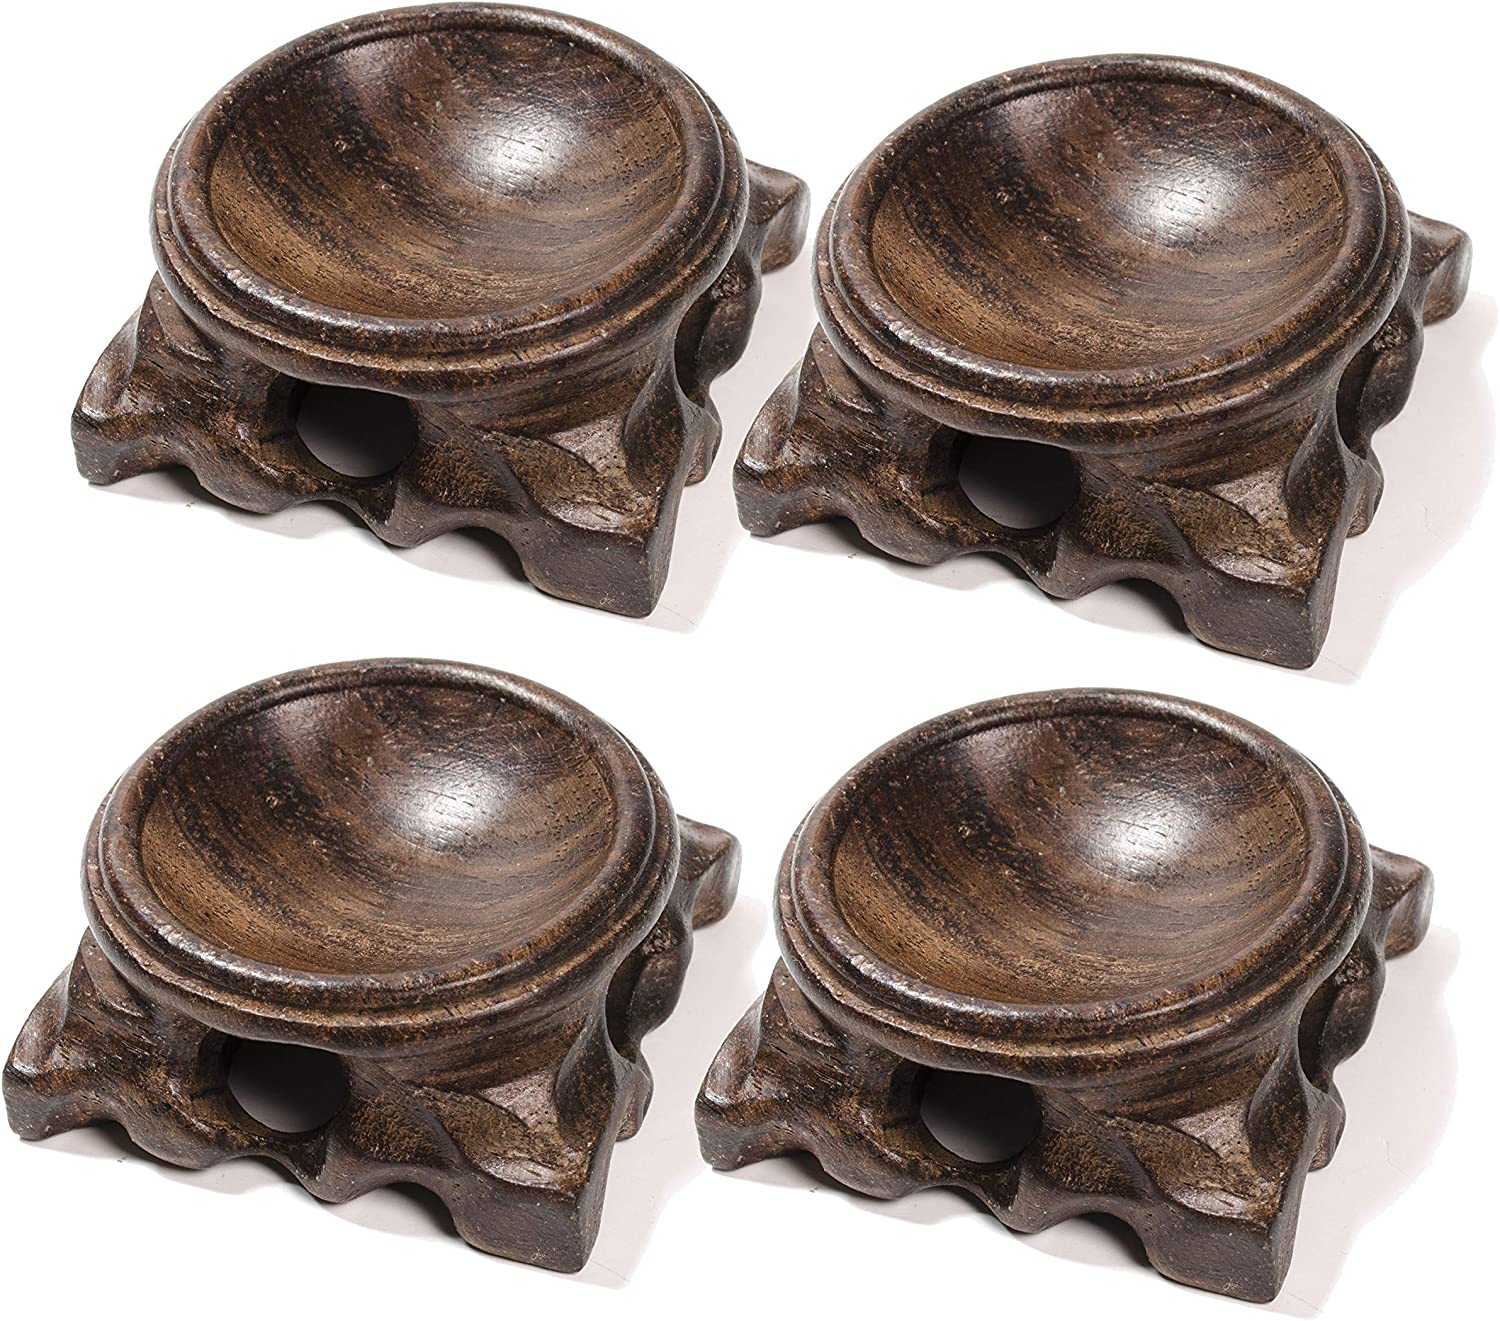 Wooden Stand for Crystal Wholesale Sphere Quartz Egg Ball Holder Bombing free shipping Orb Base